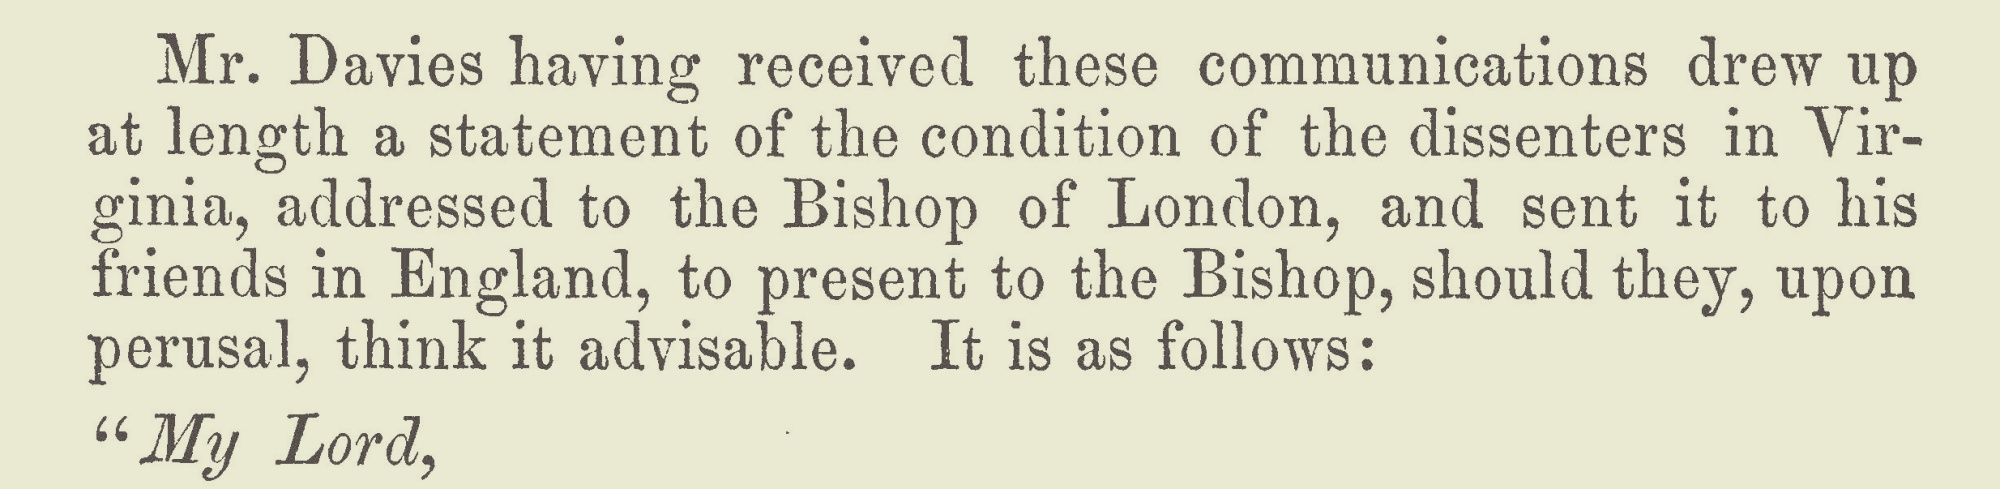 Davies, Samuel, January 10, 1752 Letter to the Bishop of London Title Page.jpg